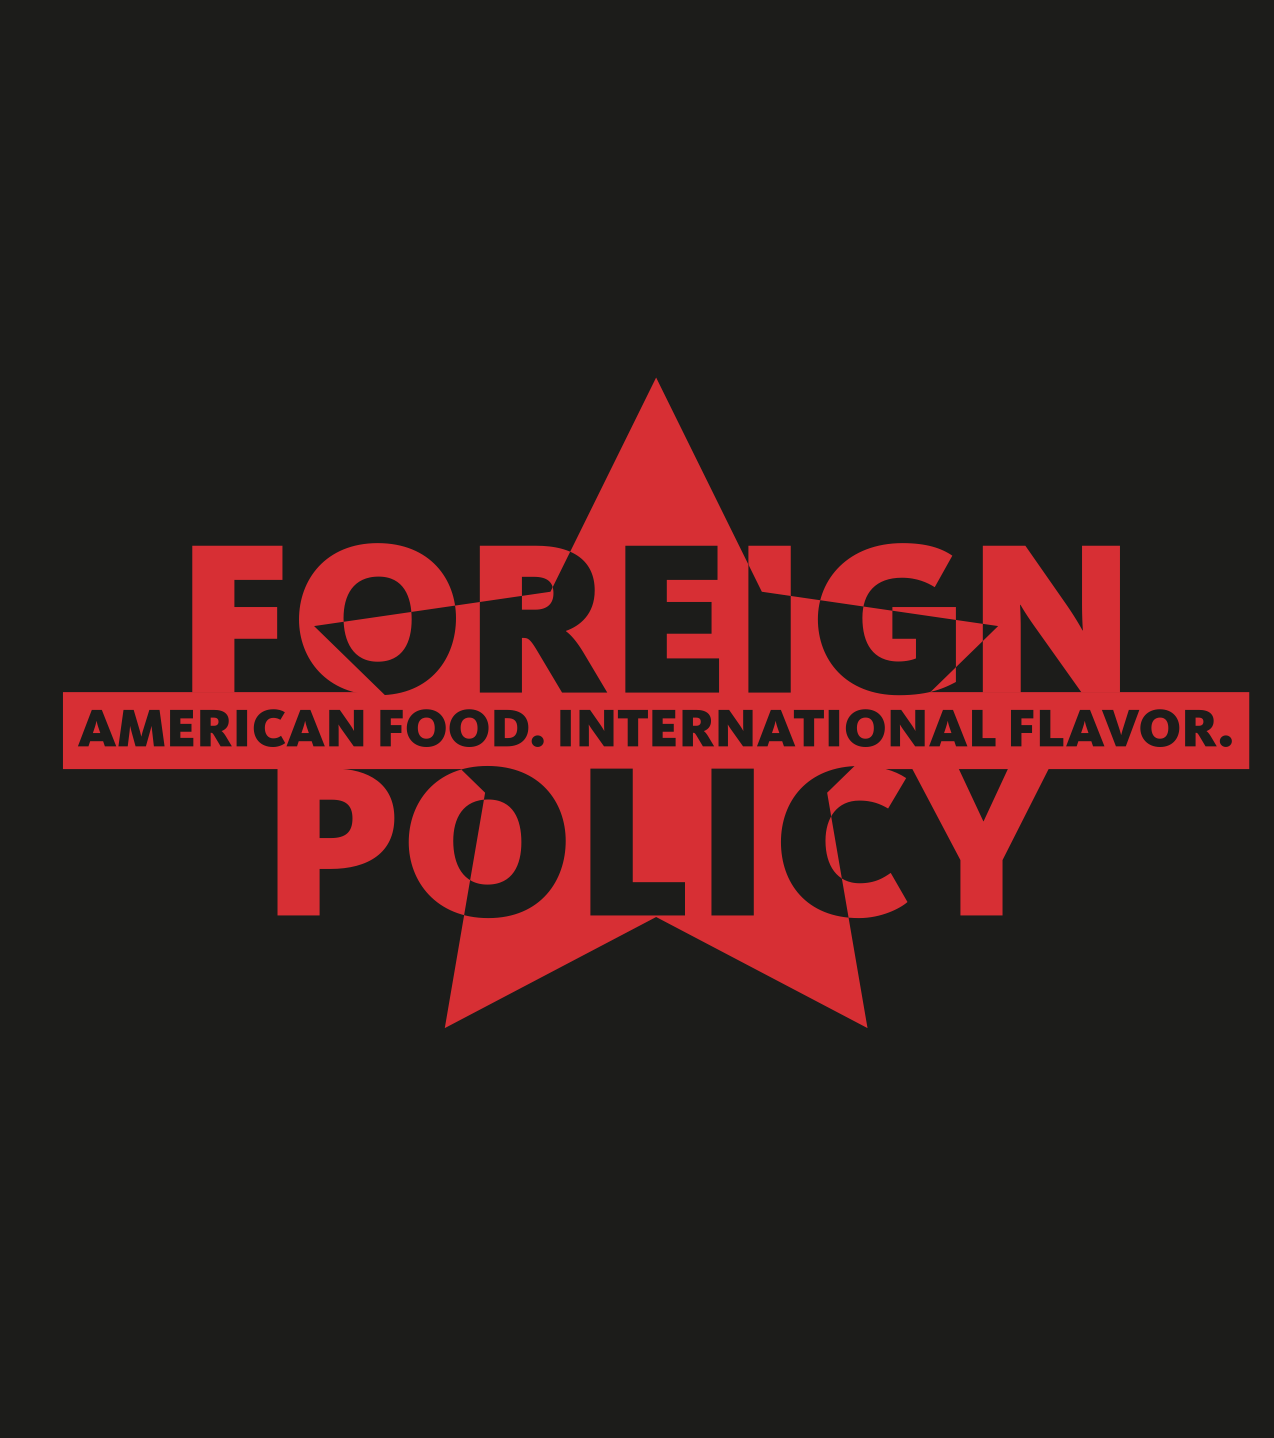 foreign policy General objectives that guide the activities and relationships of one state in its interactions with other states.